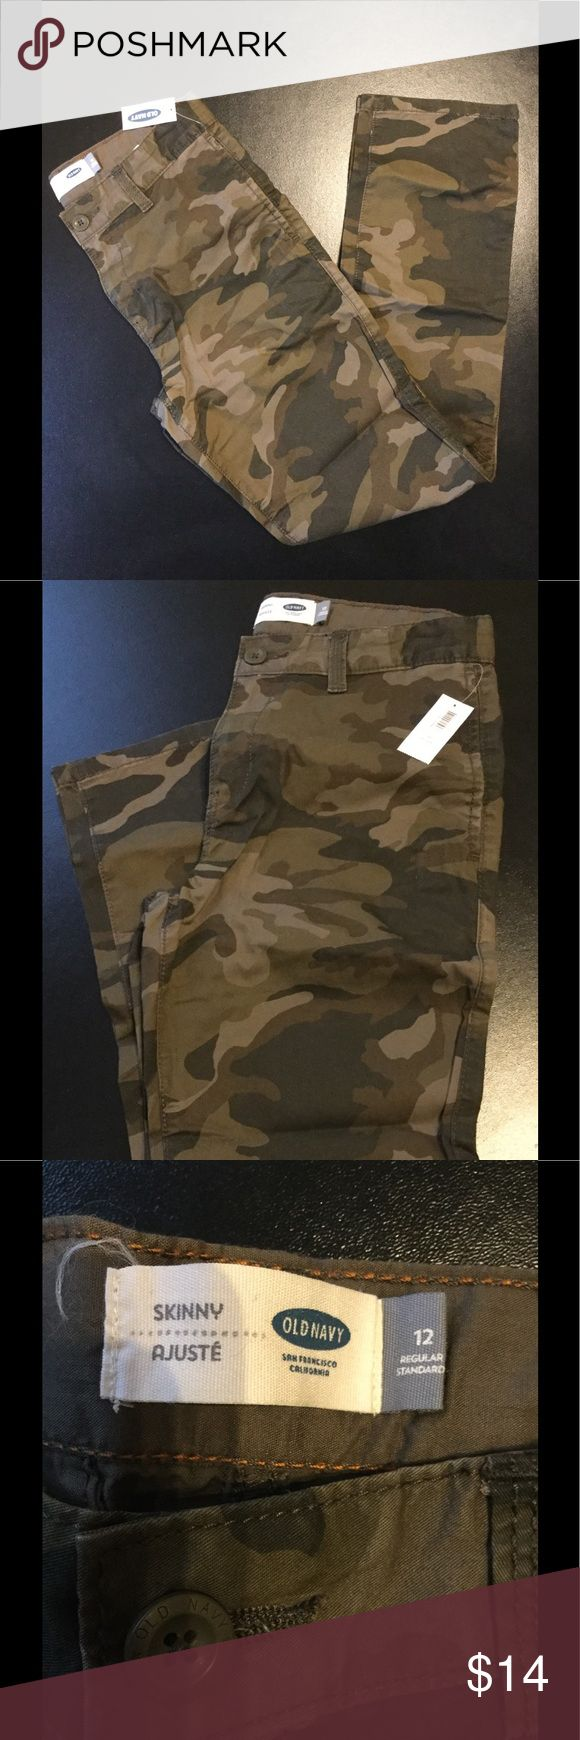 Old Navy Boys Camouflage Skinny Pants size 12 Welcome.  This listing is for a pair of boys Old Navy camouflage pants. NEW with tags. This item is a size 12. Style: Skinny pants with adjustable waistband. Item is stored in a smoke free/ pet free environment Old Navy Bottoms Jeans